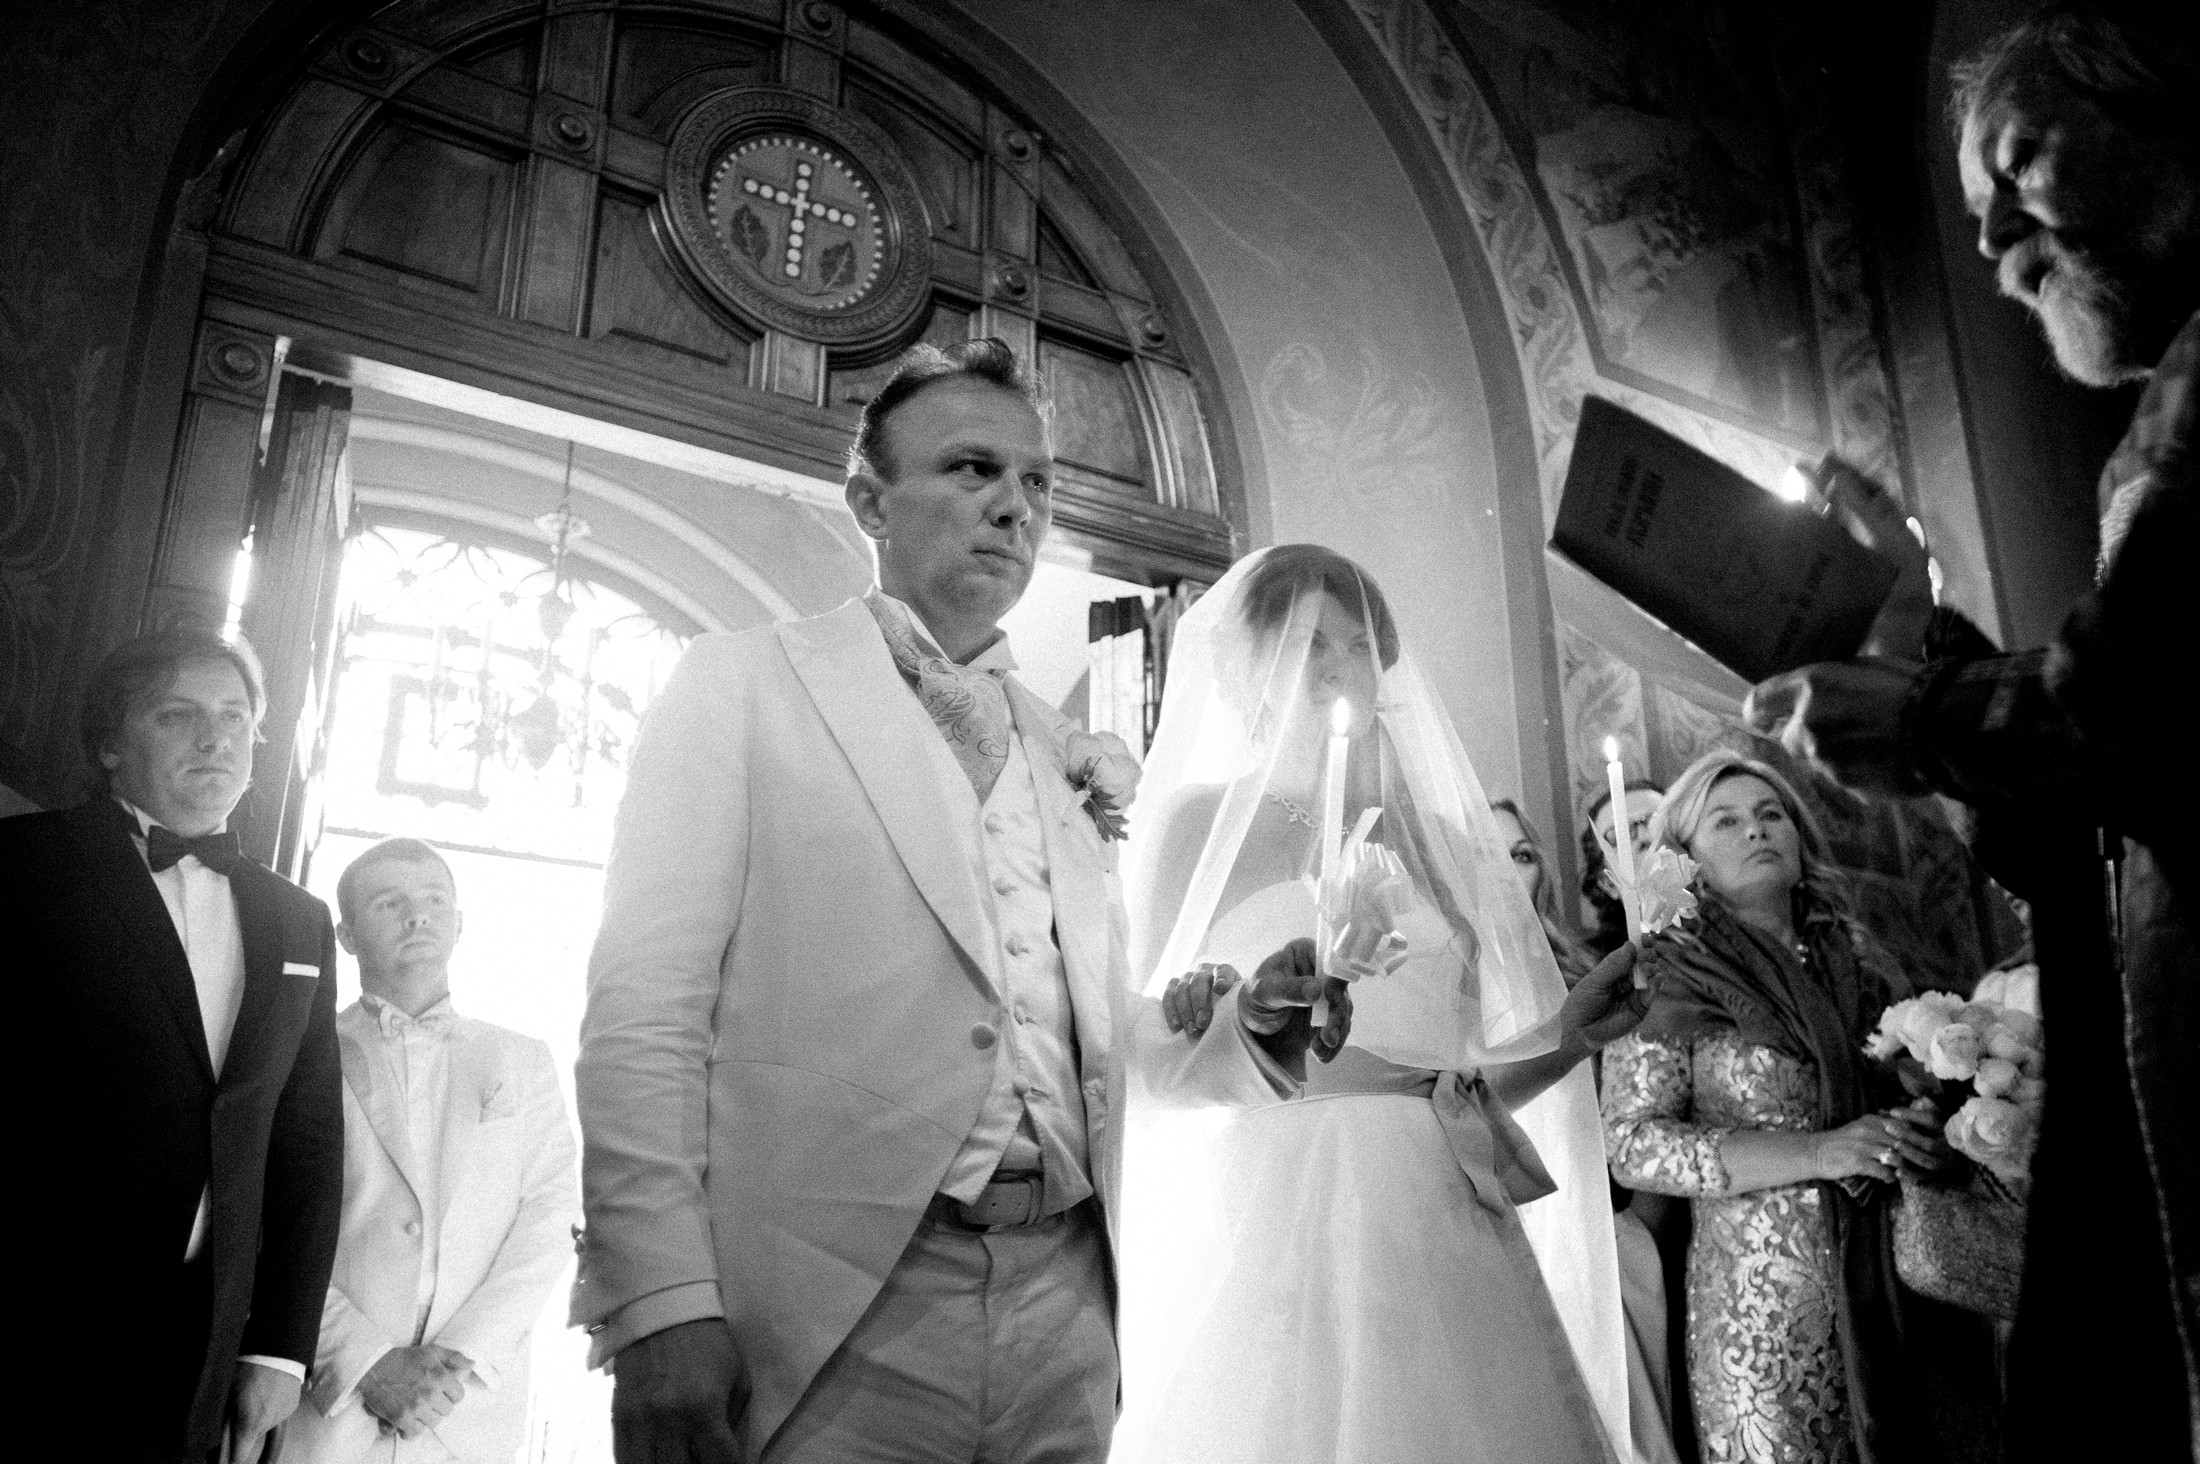 the bride and the groom during the wedding ceremony